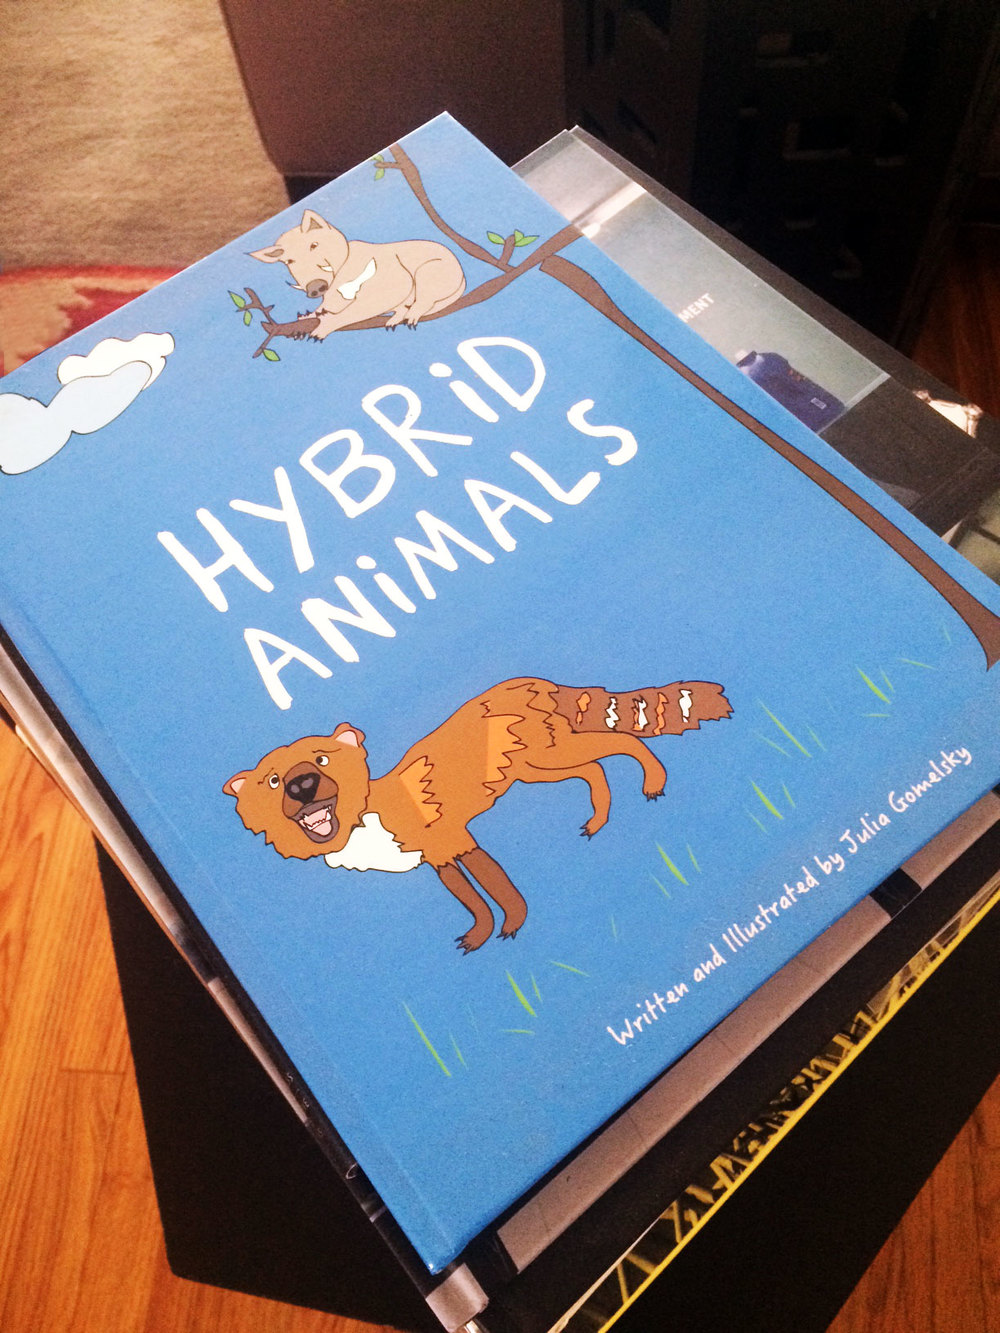 hybrid-animals-custom-illustrated-book-collection-detail.jpg